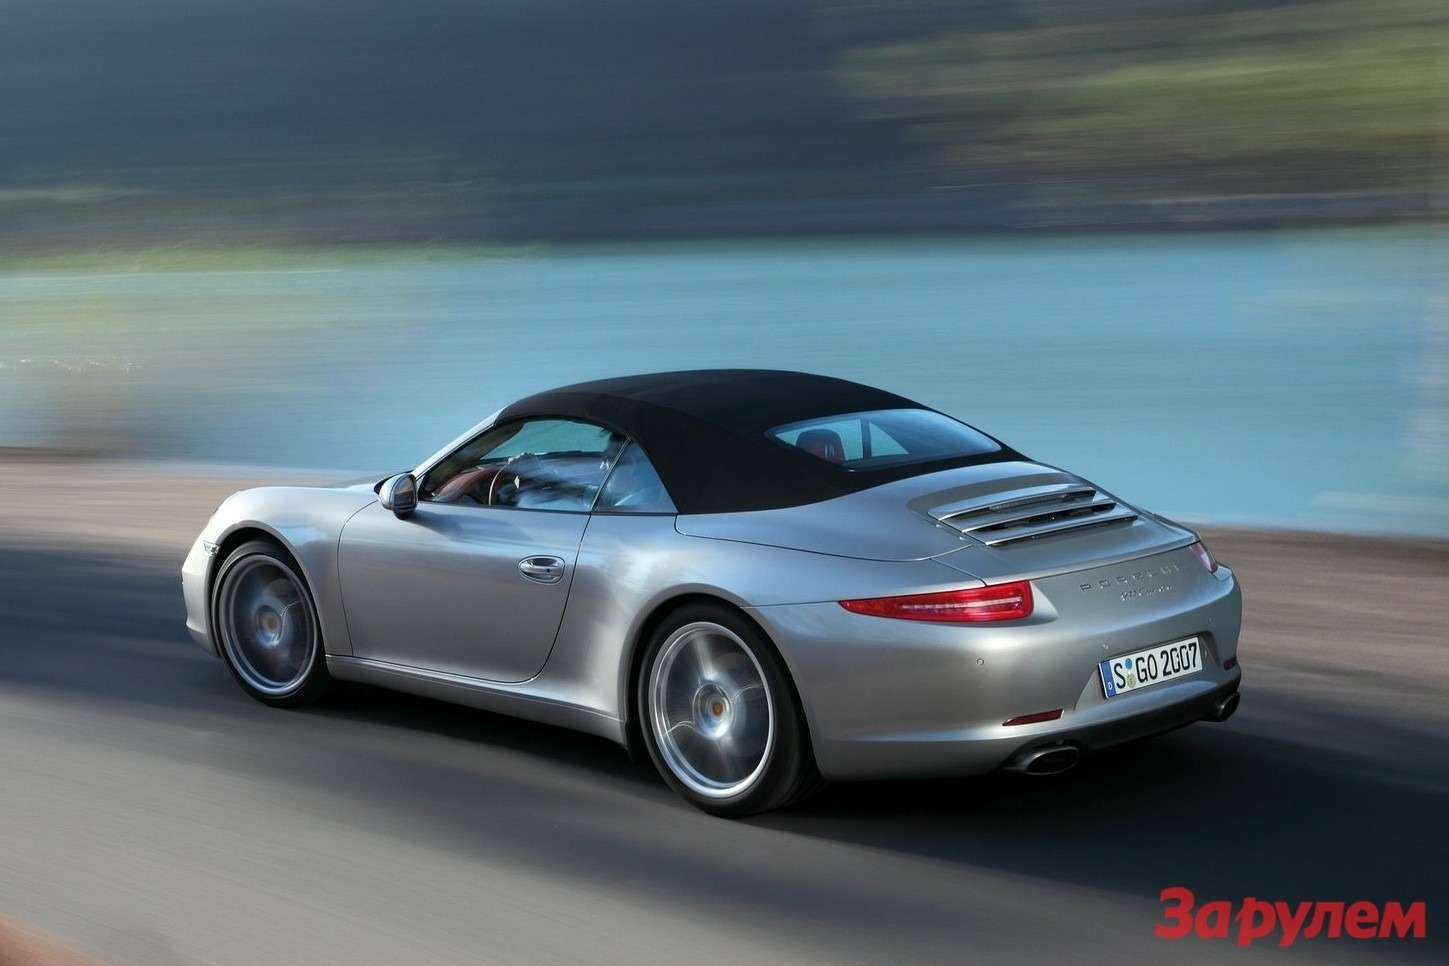 Porsche 911 Carrera Cabriolet 2013 1600x1200 wallpaper 04